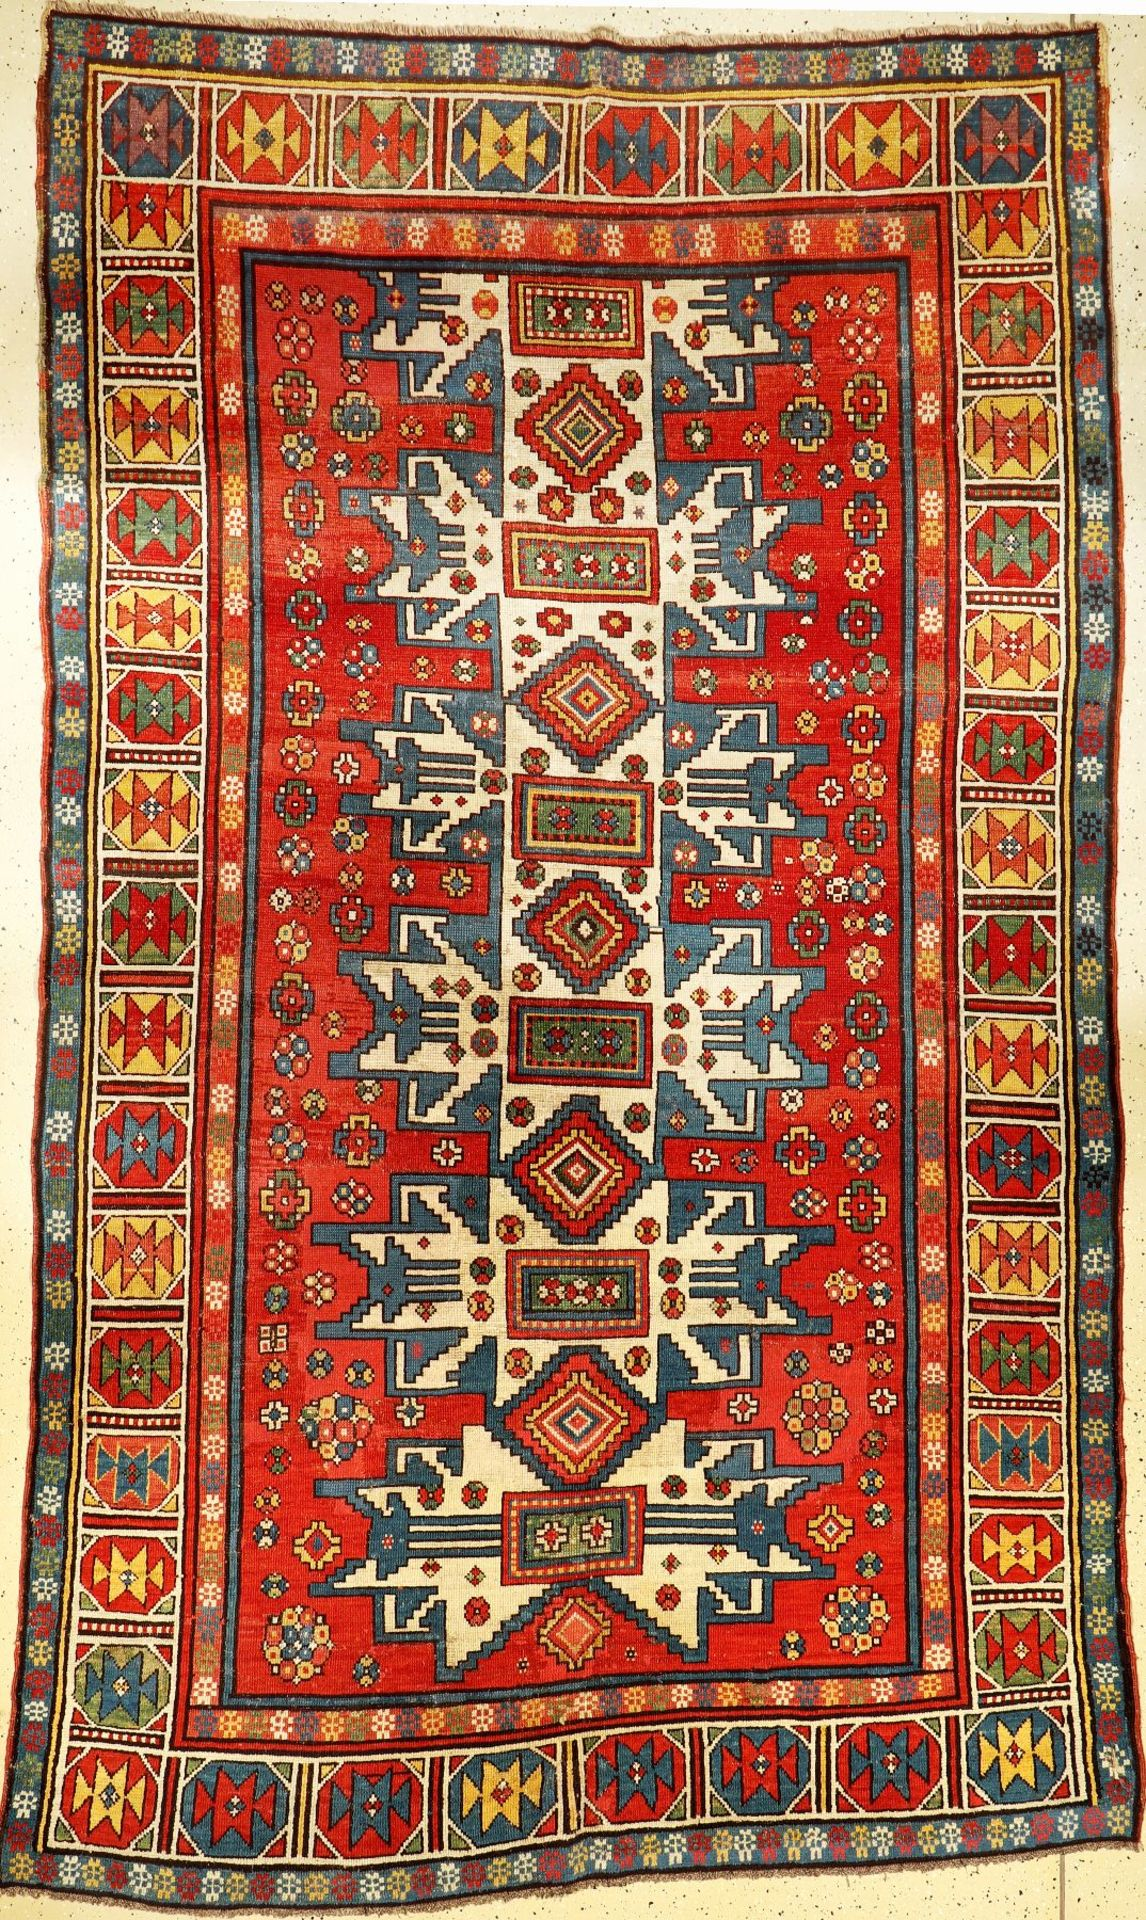 Large antique kazak, Caucasus, Lesghi stars, 19th century, wool on wool, approx. 300 x 180 cm, rare,